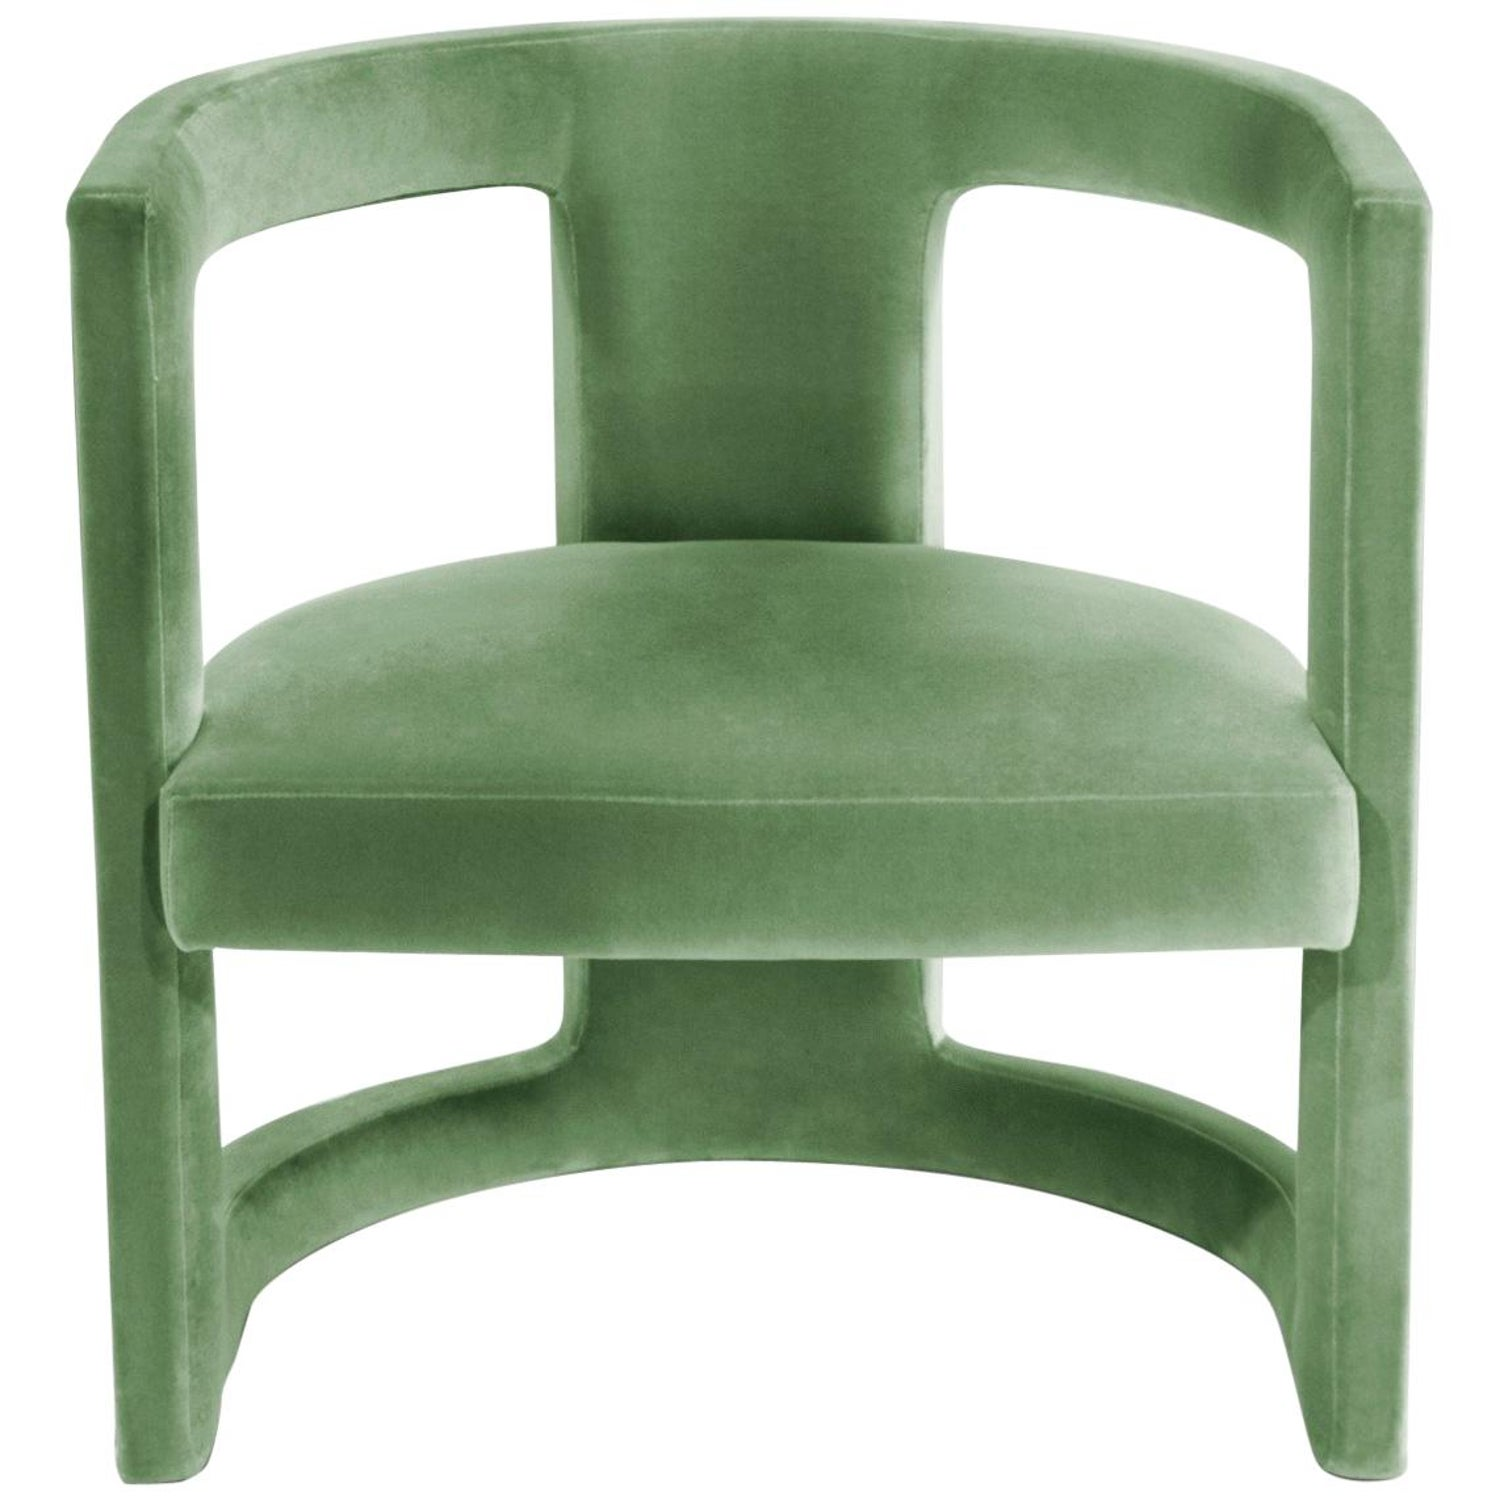 Brabbu rukay bold armchair in green cotton velvet for sale at 1stdibs